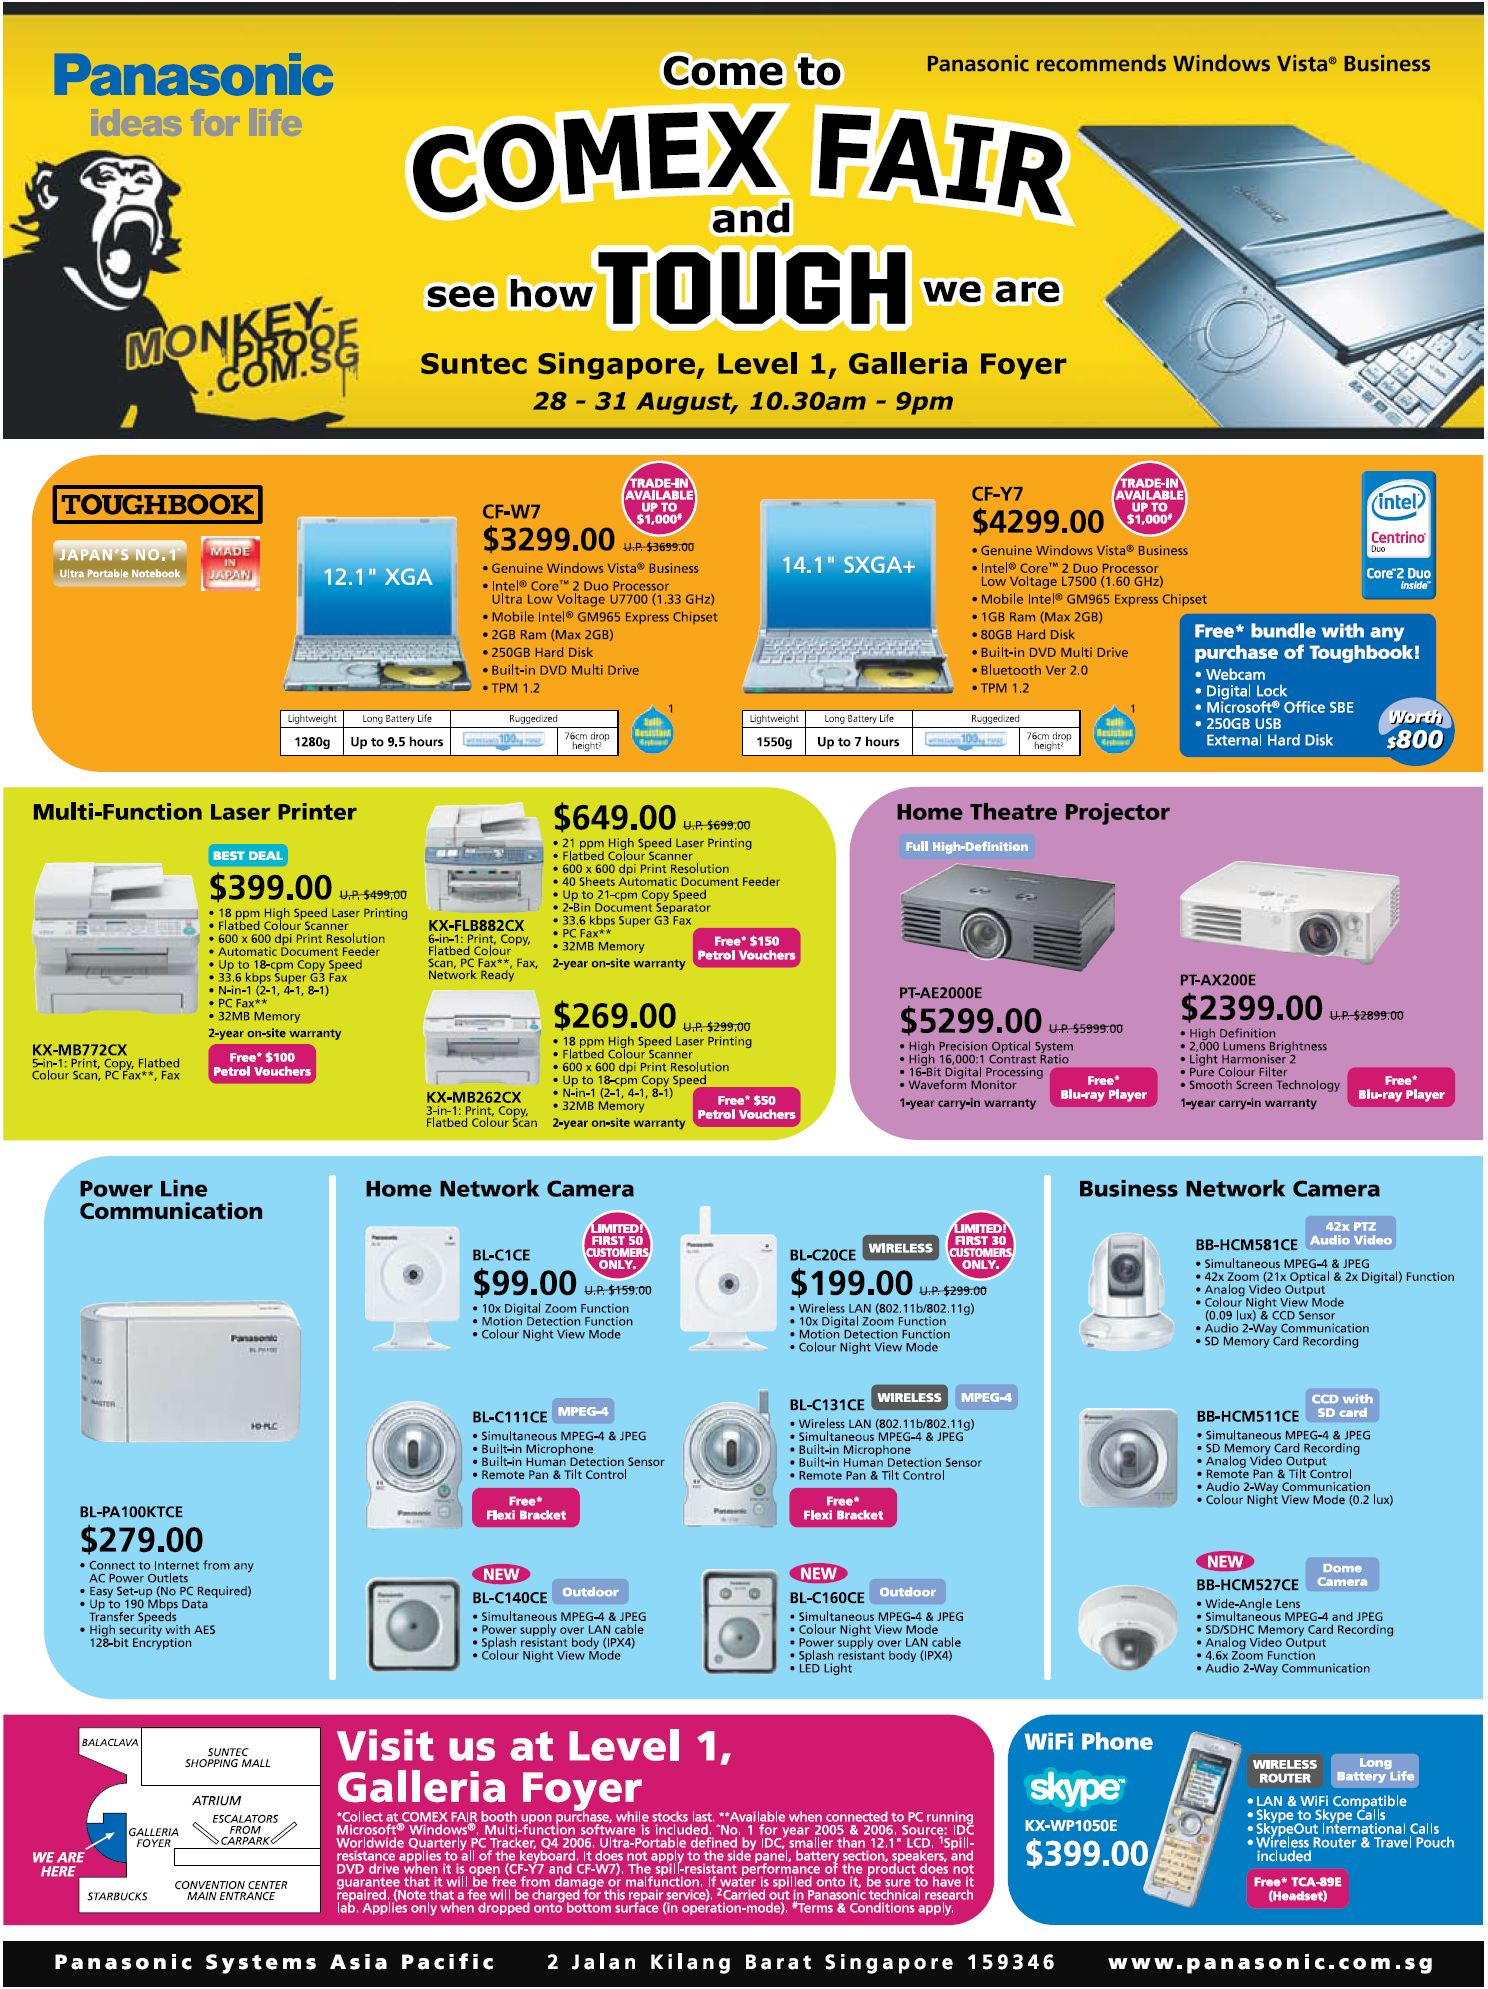 Comex 2008 price list image brochure of Panasonic